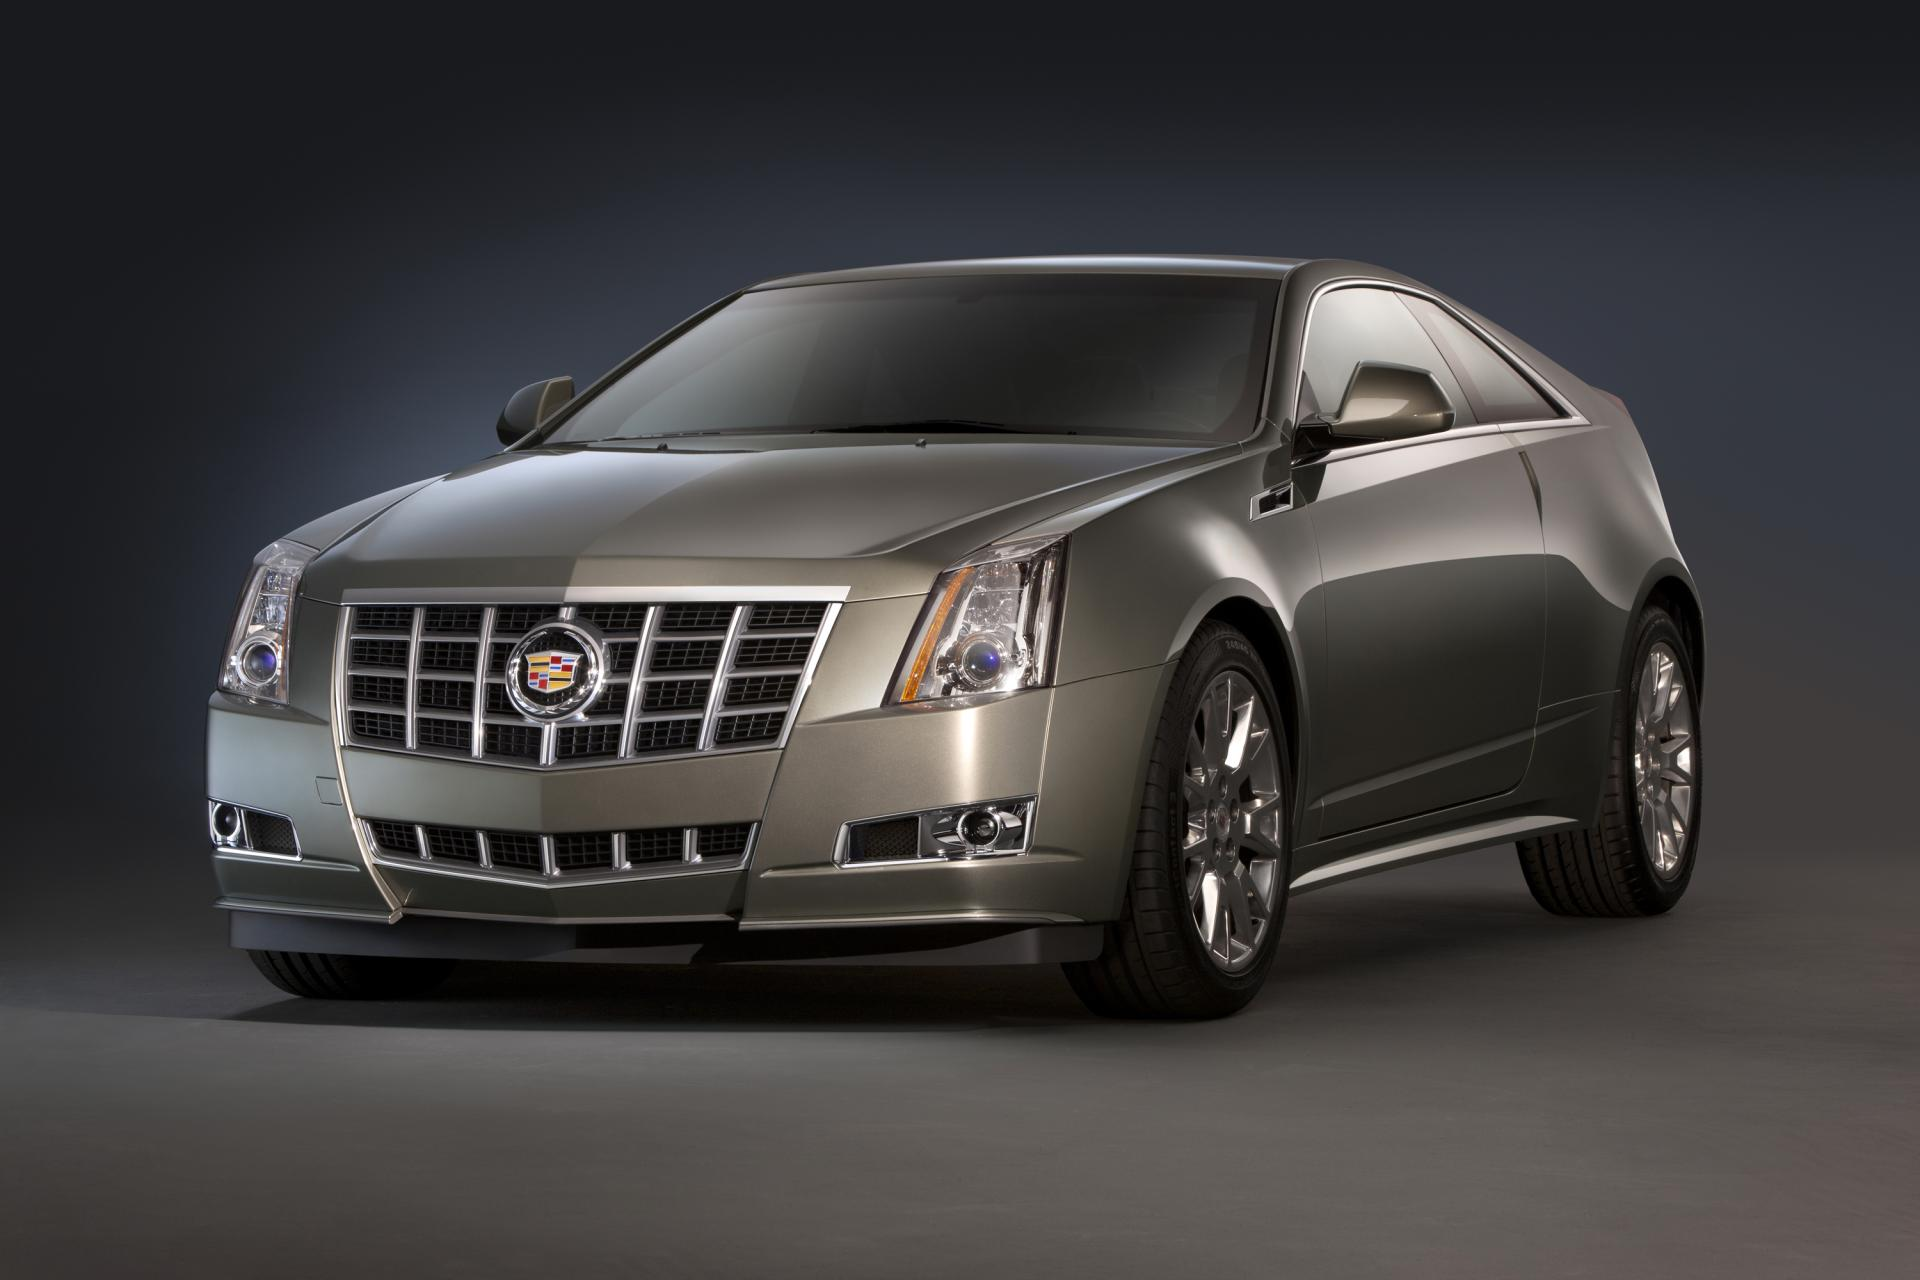 2012 cadillac cts. Black Bedroom Furniture Sets. Home Design Ideas